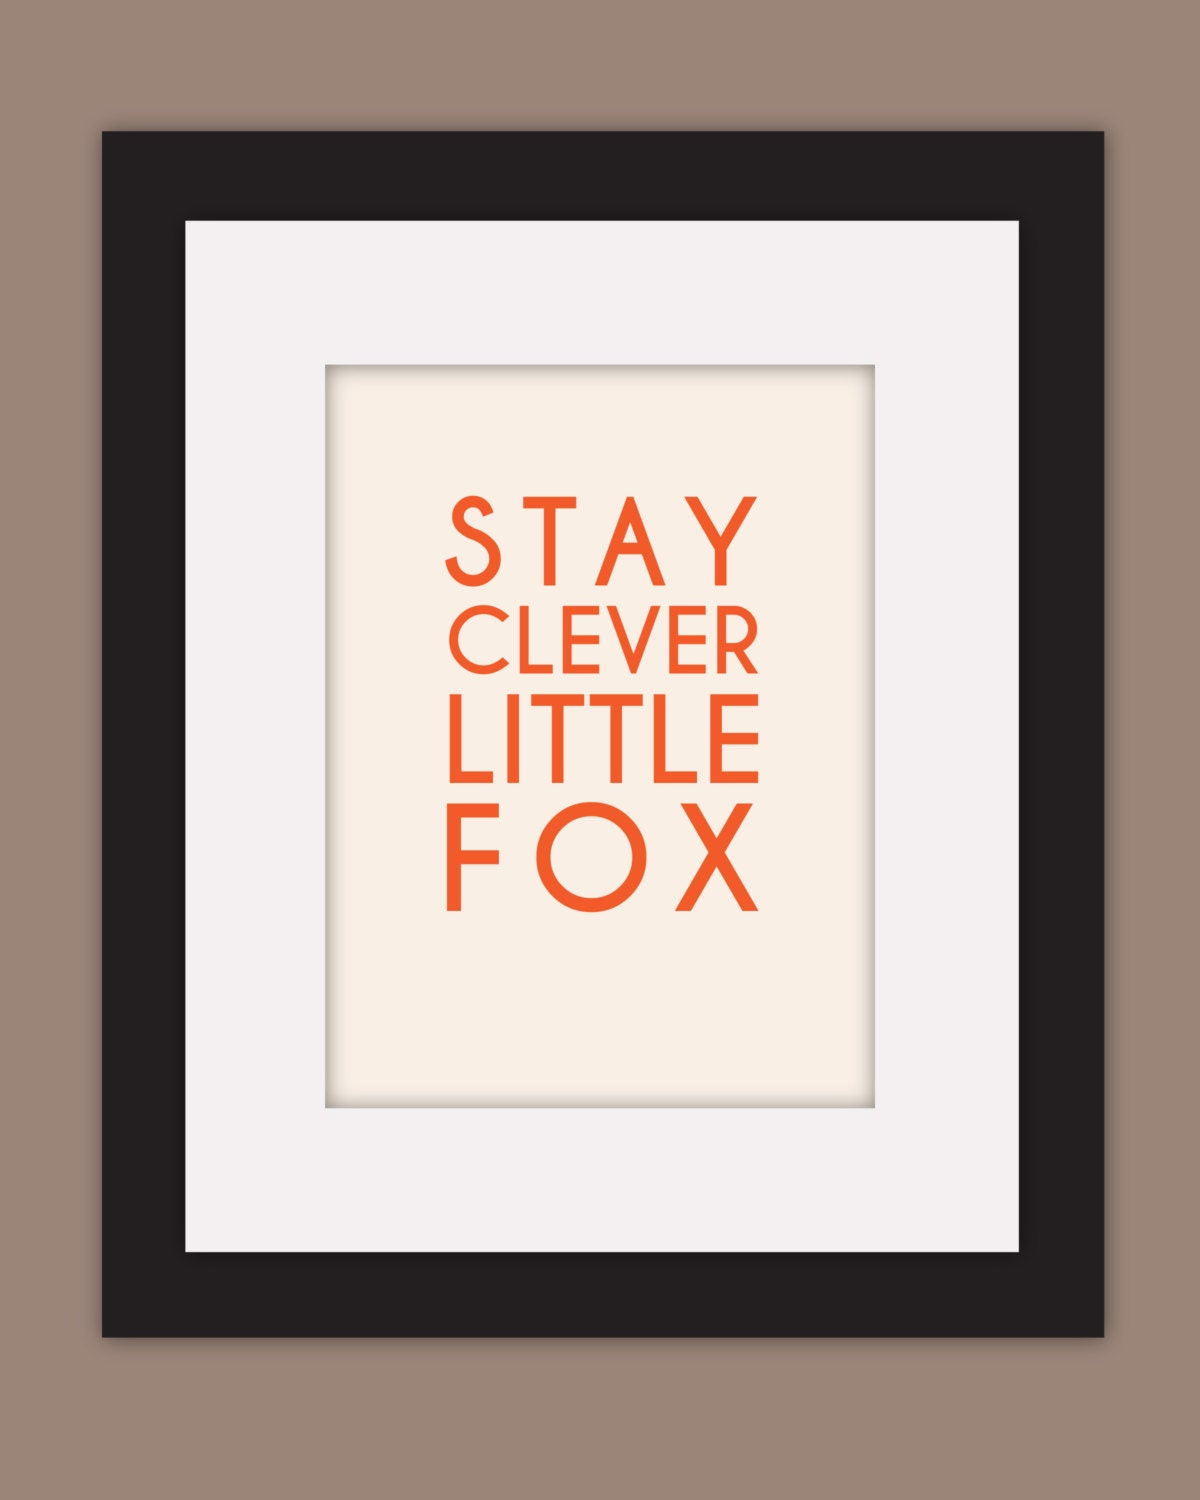 Clever Fox: Stay Clever Little Fox Print 8x10 Fox Art Print By